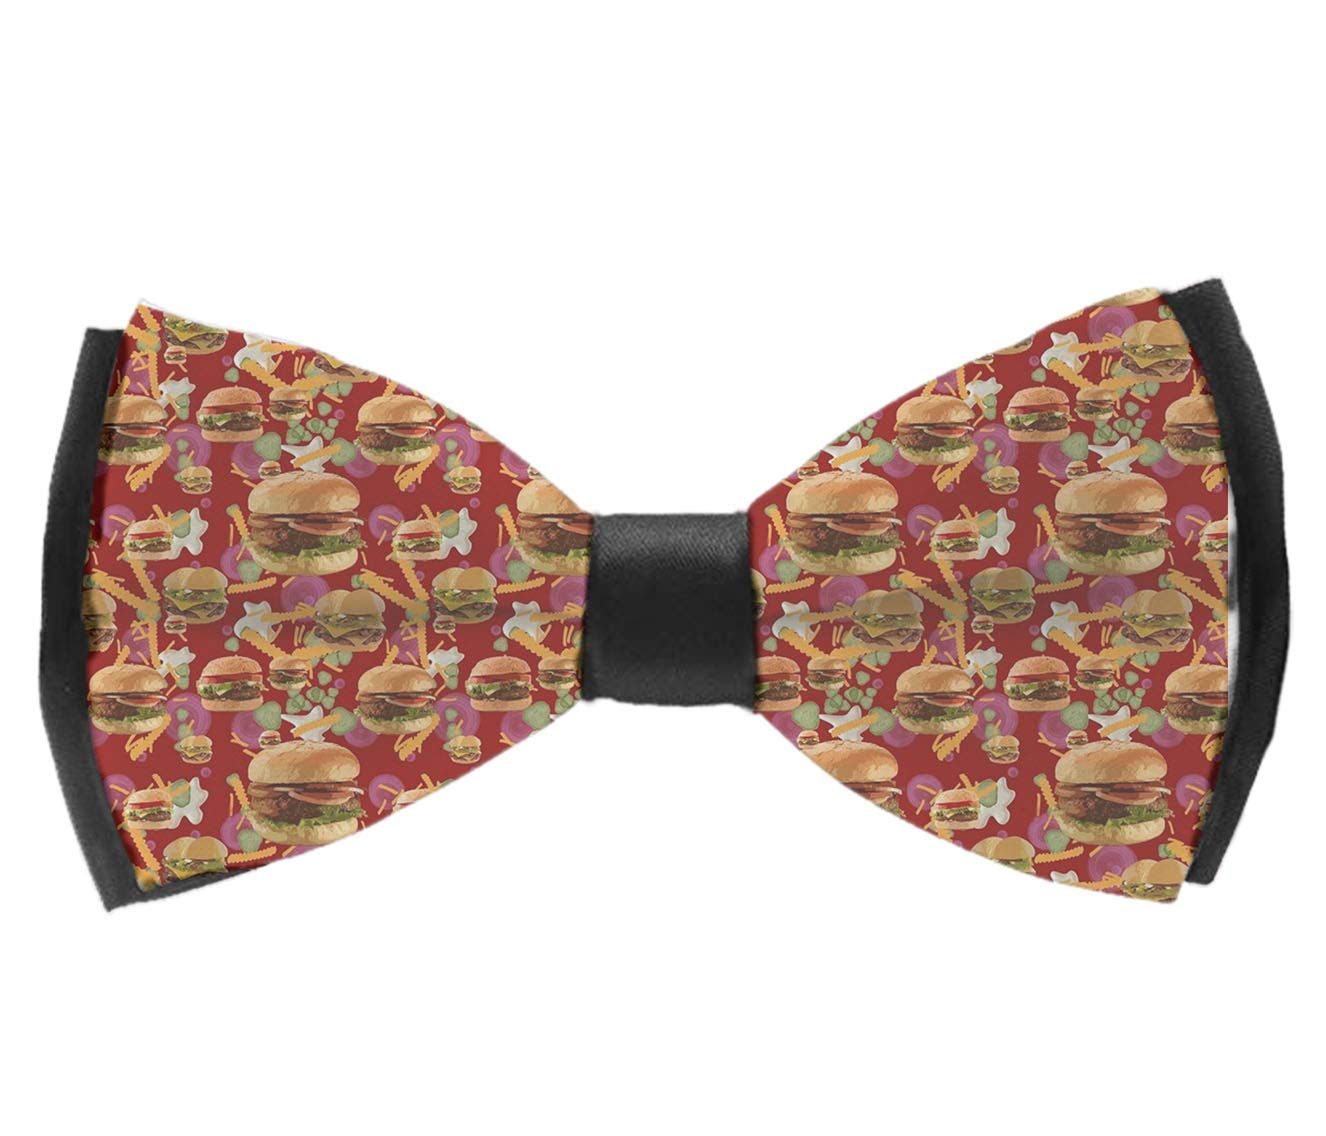 INWANZI Adjustable Length Pre-Tied Bow Tie for Men /& Boys Elegant Red Hamburgers French Fries Bowtie